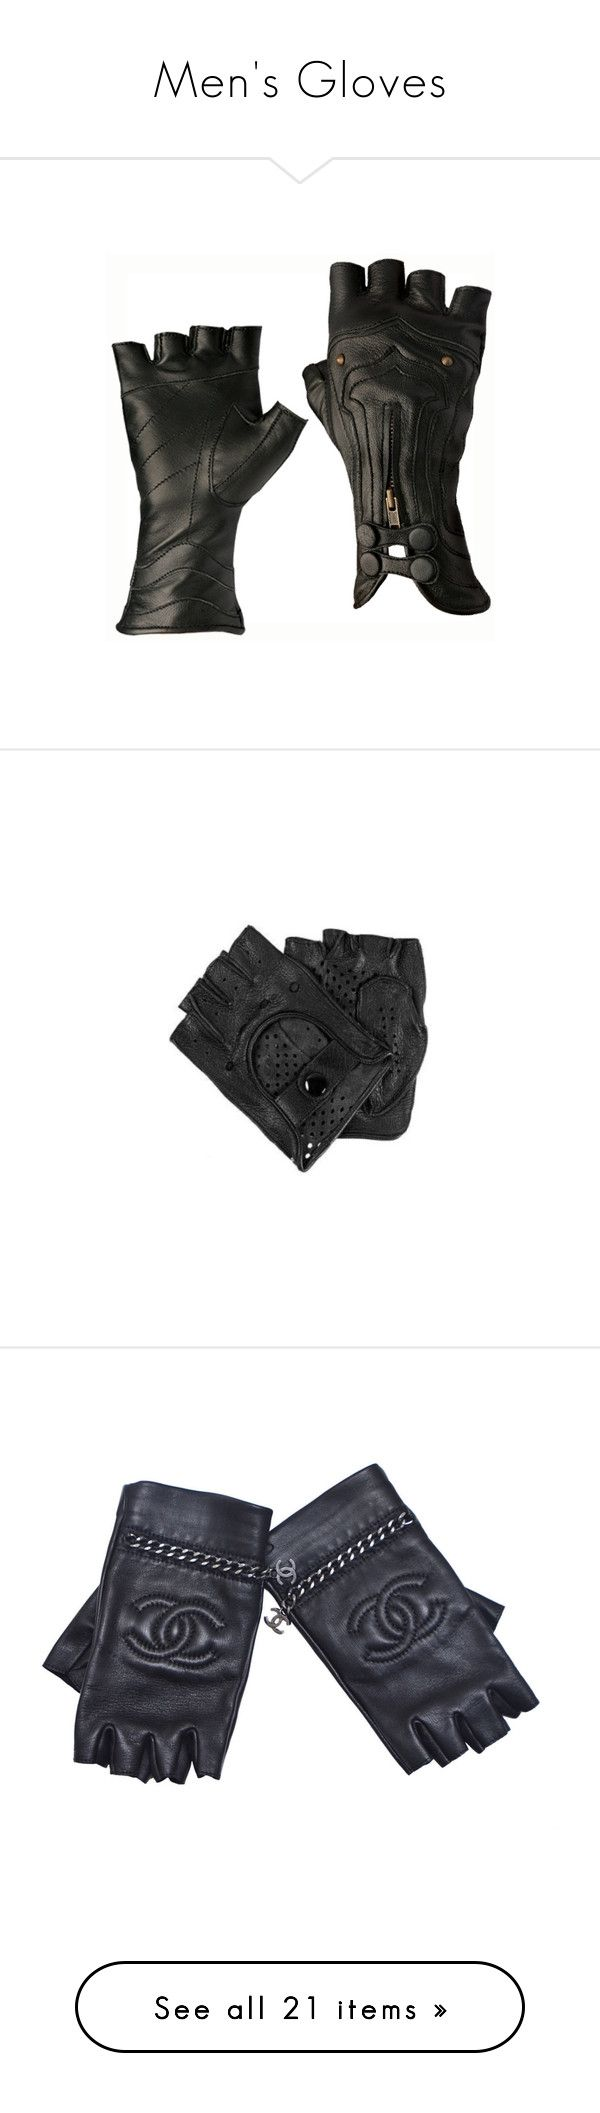 """""""Men's Gloves"""" by servayne ❤ liked on Polyvore featuring accessories, gloves, steampunk, luvas, steampunk leather gloves, steampunk gloves, leather gloves, men, chanel and lambskin leather gloves"""